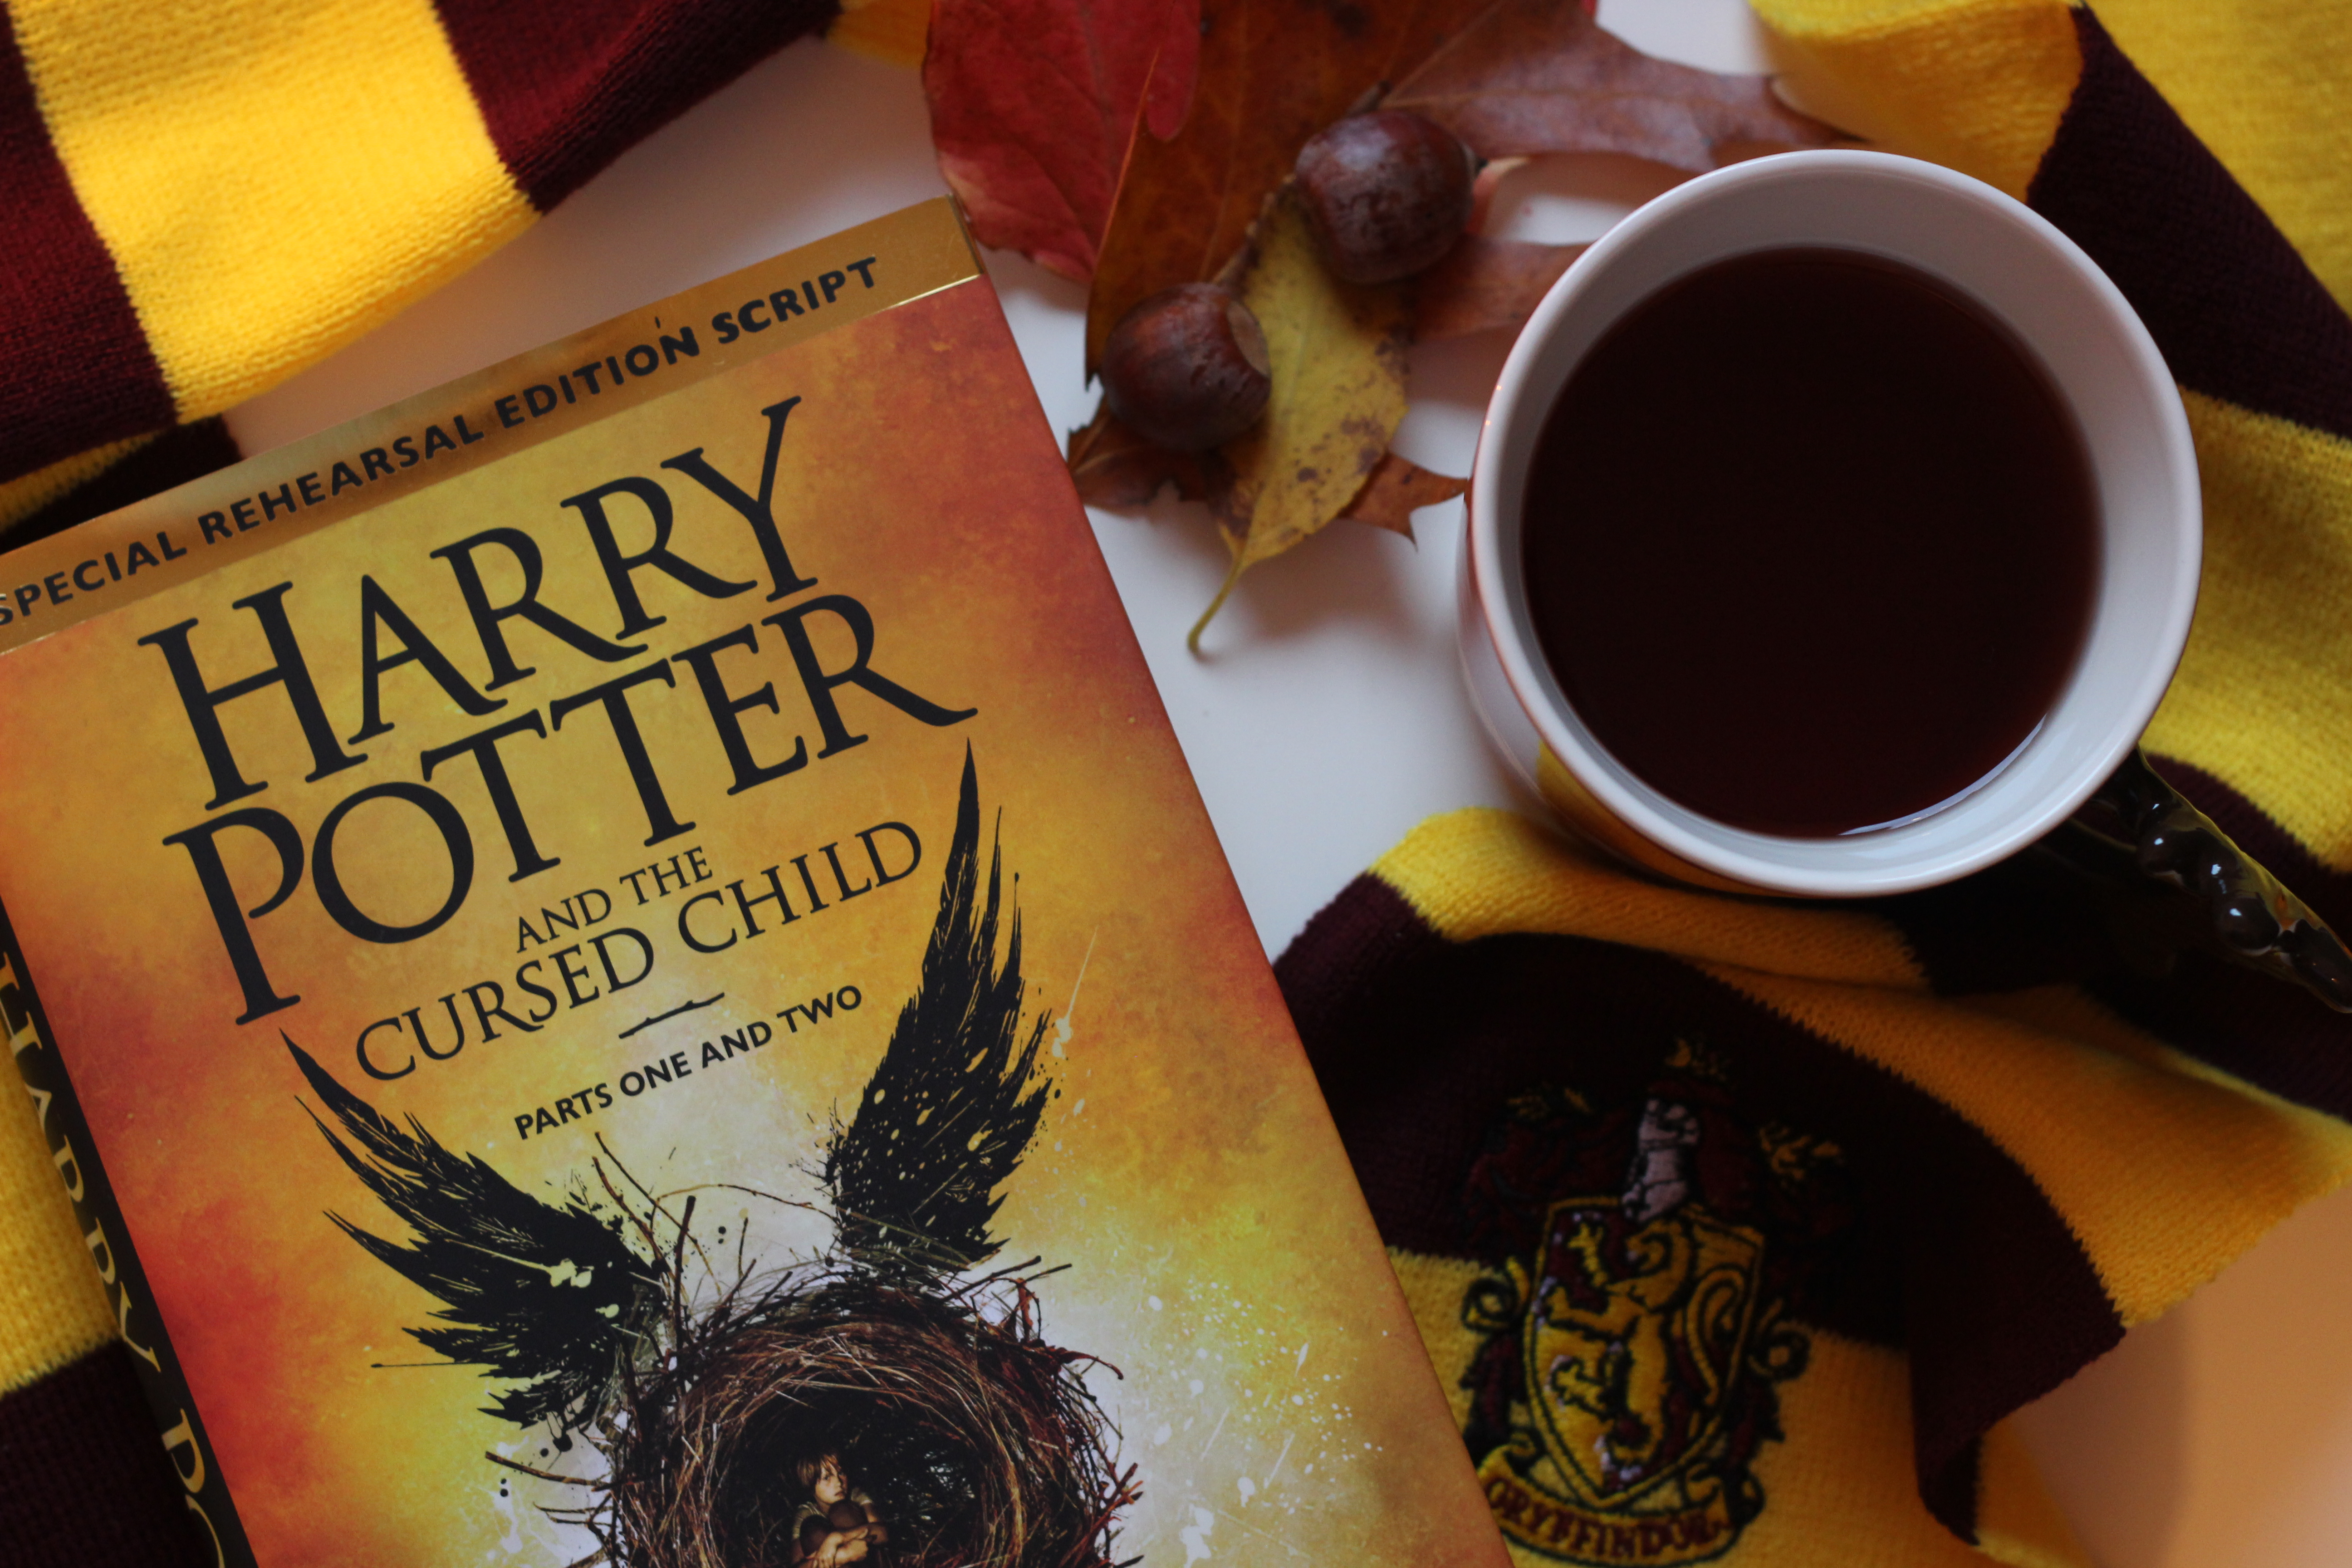 Harry Potter and The Cursed Child – Joanne K. Rowling